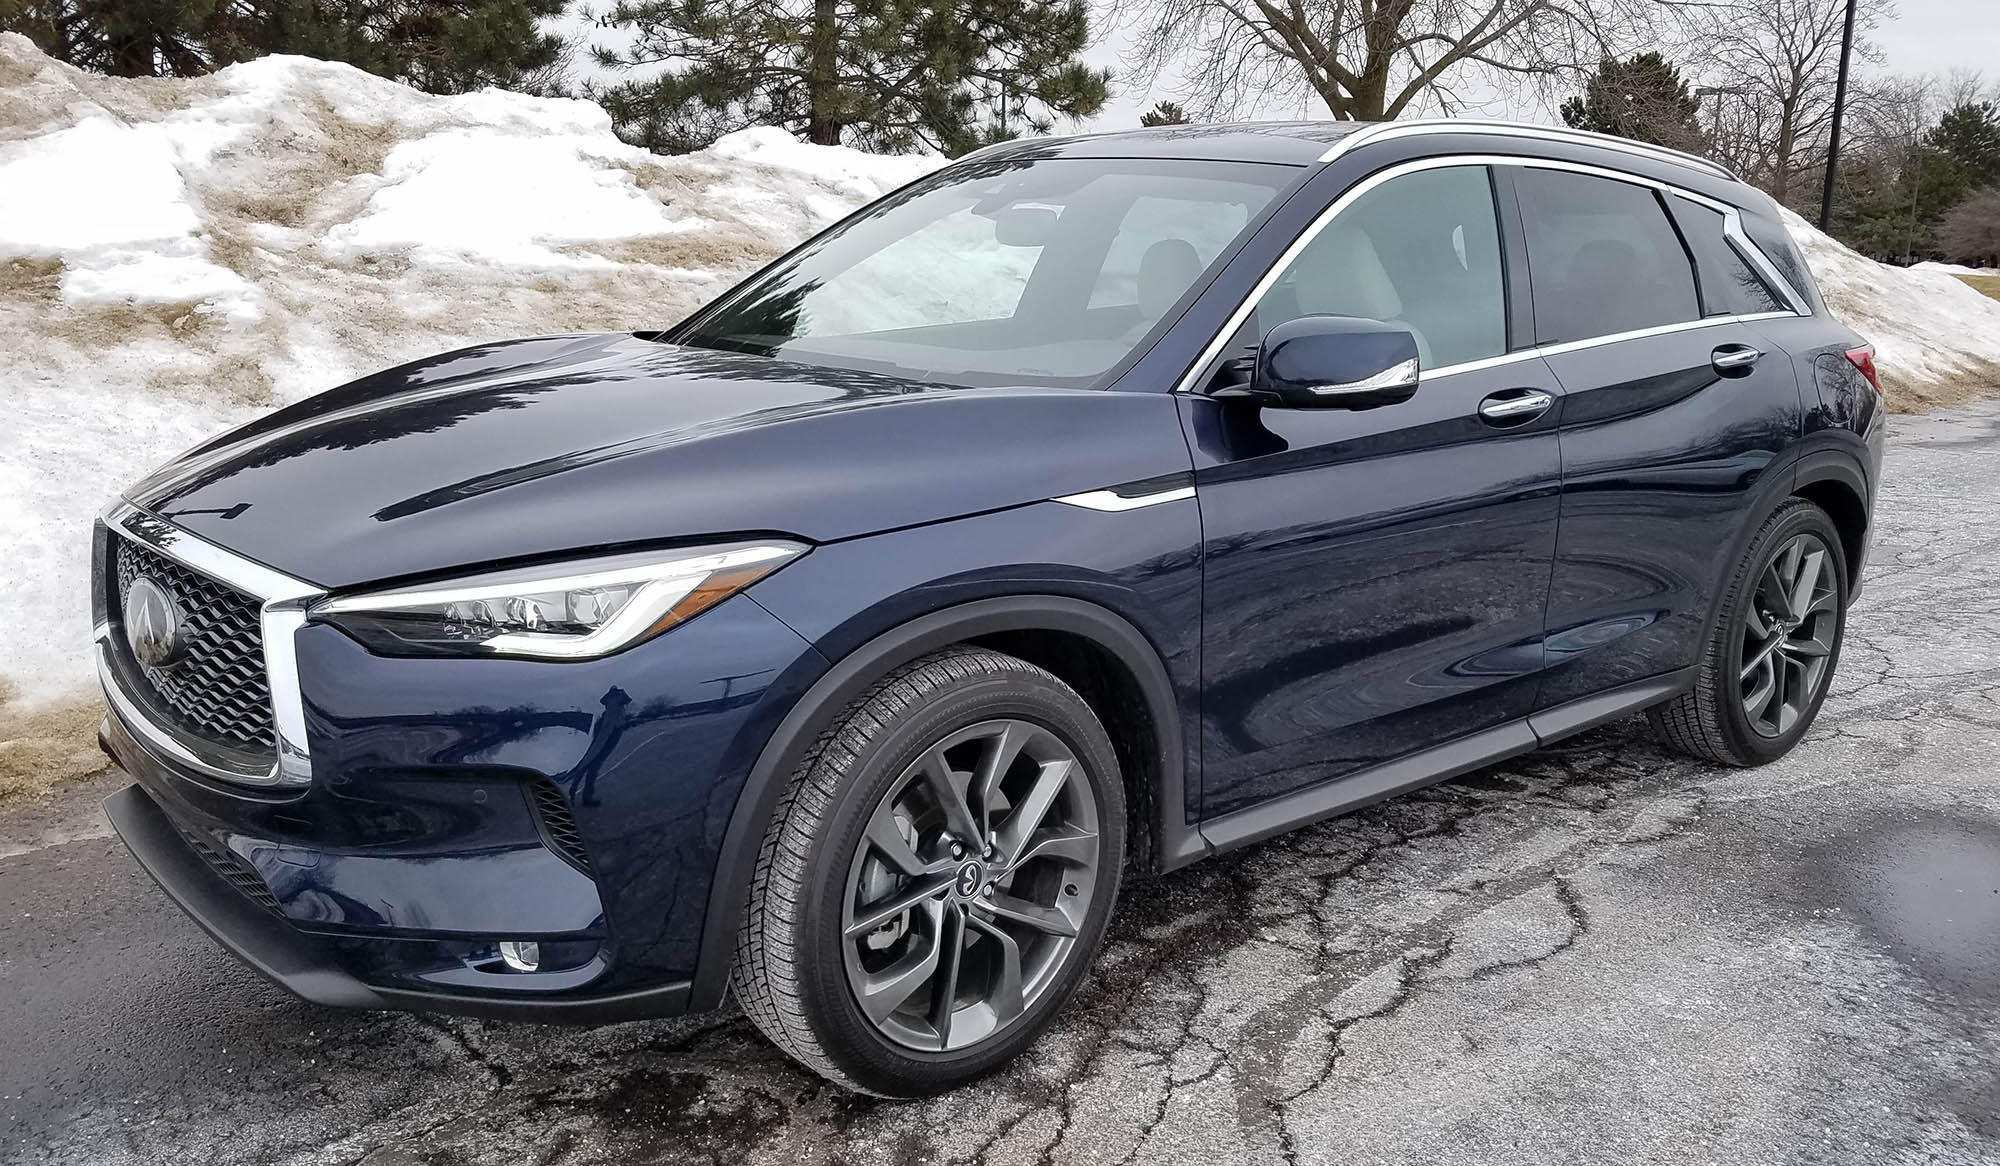 40 All New New 2019 Infiniti Qx50 Horsepower Review Picture